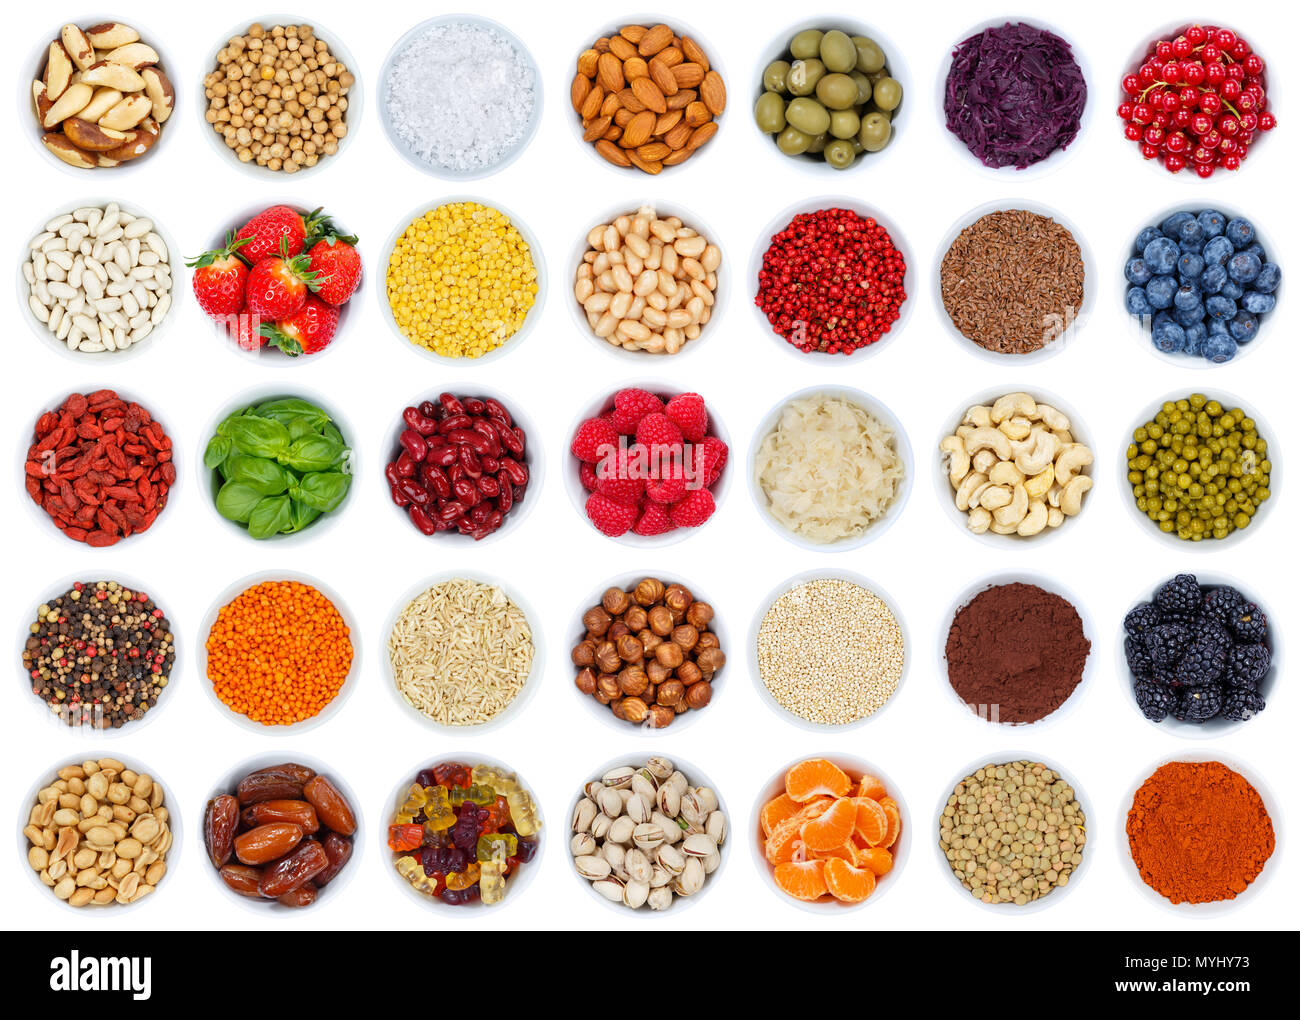 Collection of fruits and vegetables berries from above isolated on a white background - Stock Image